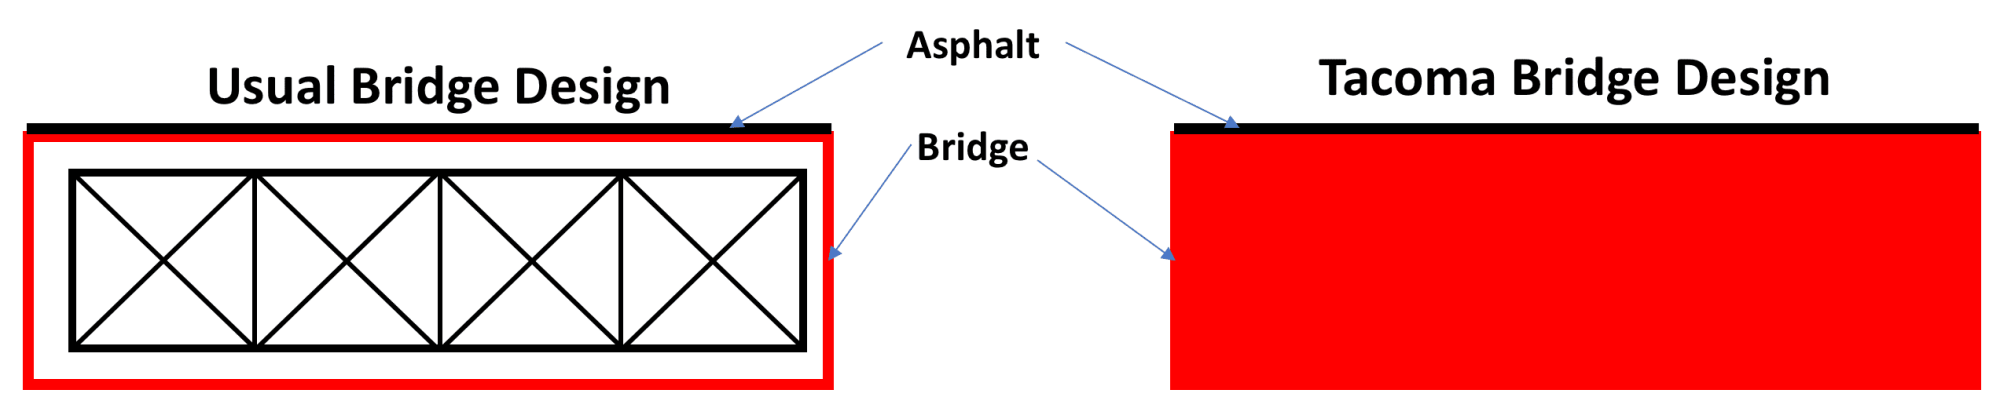 hight resolution of tacoma narrows bridge collapse comparison between the design of a typical bridge design and the